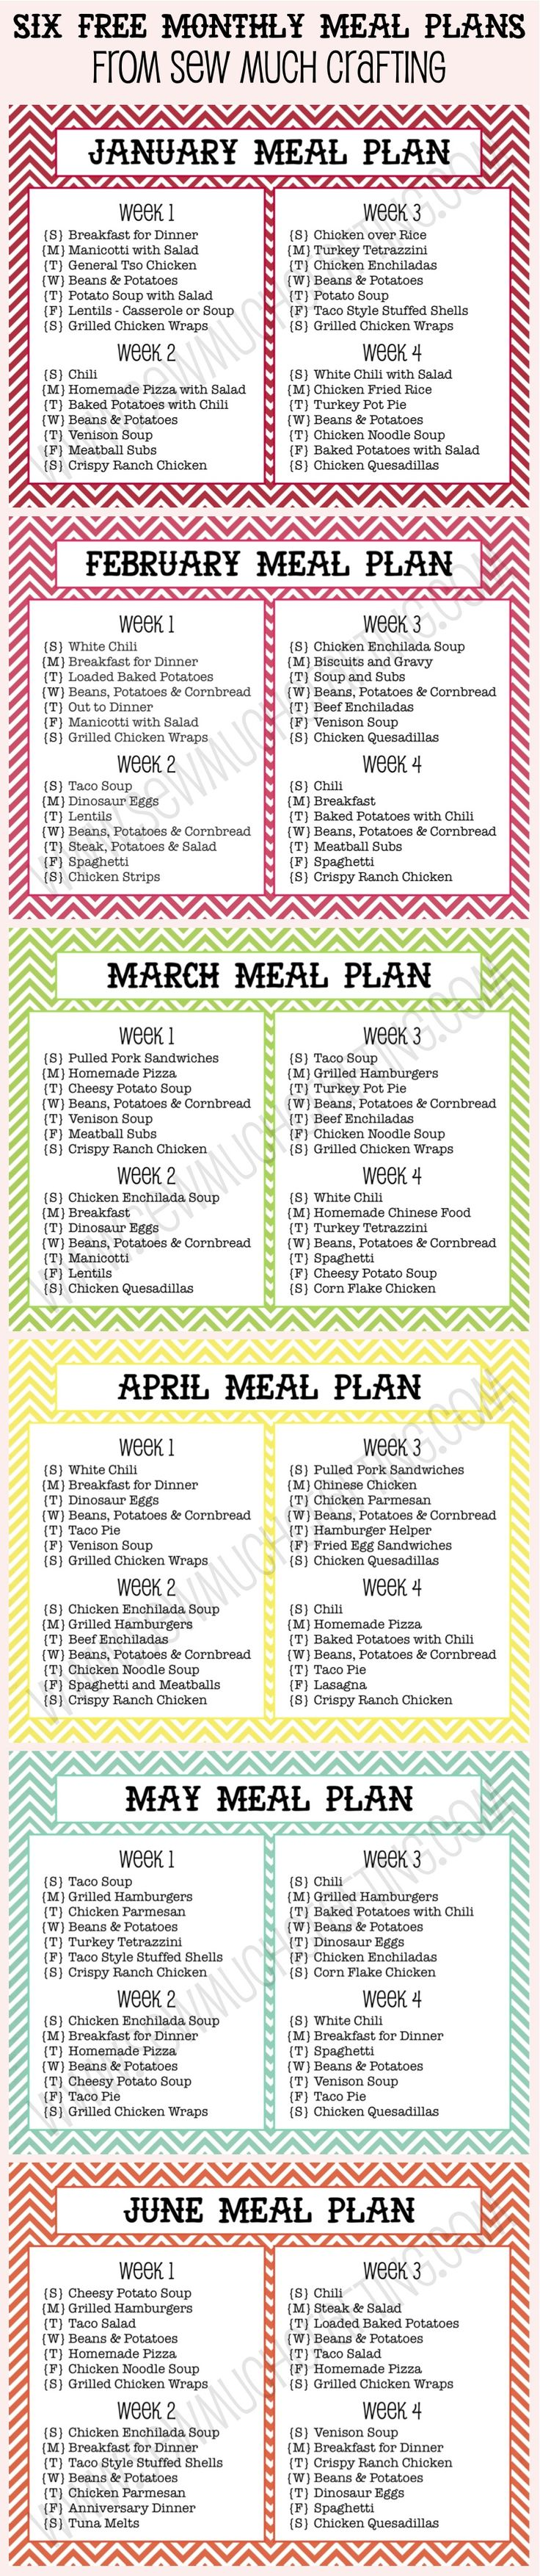 Six FREE Monthly Meal Plan Printables   A Decent Starting Point To Tweak  For Our Gf